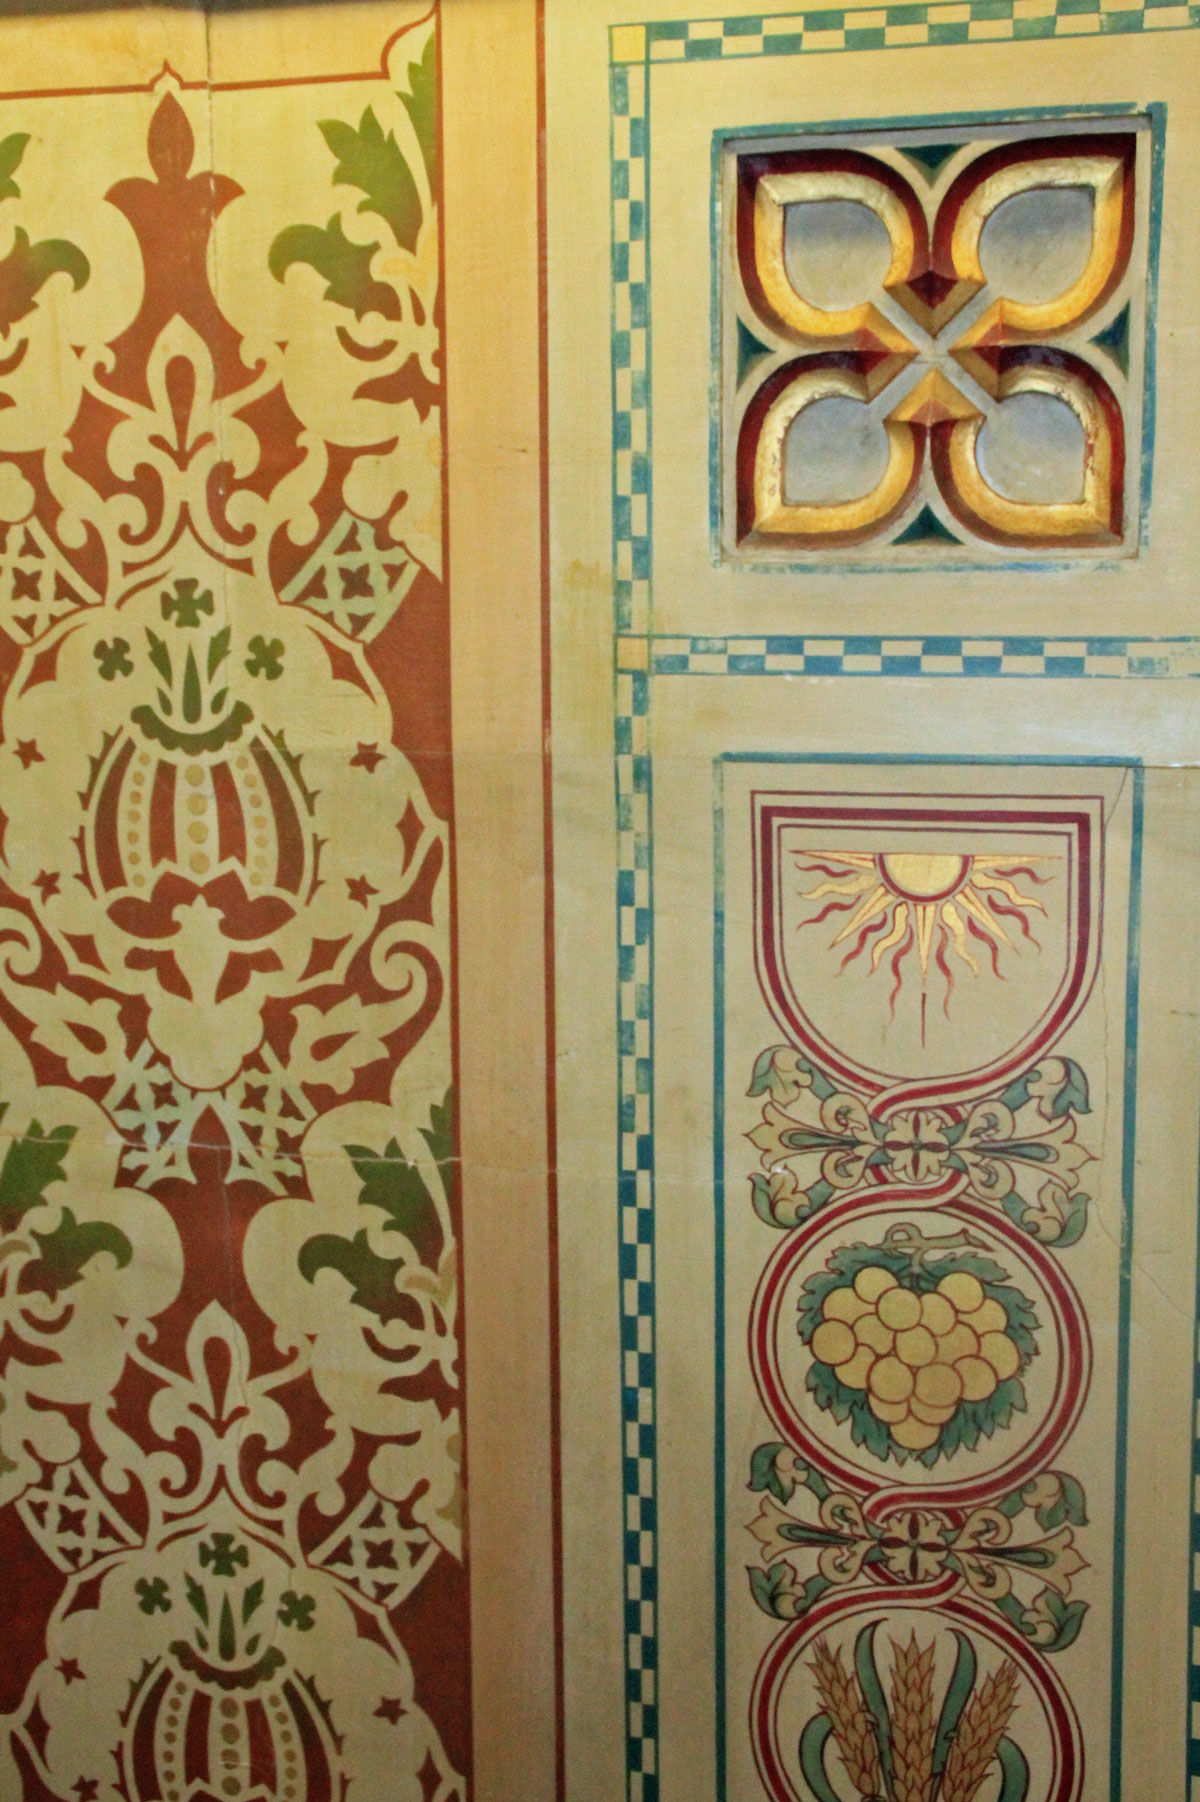 Decorative work at Acton Hill church